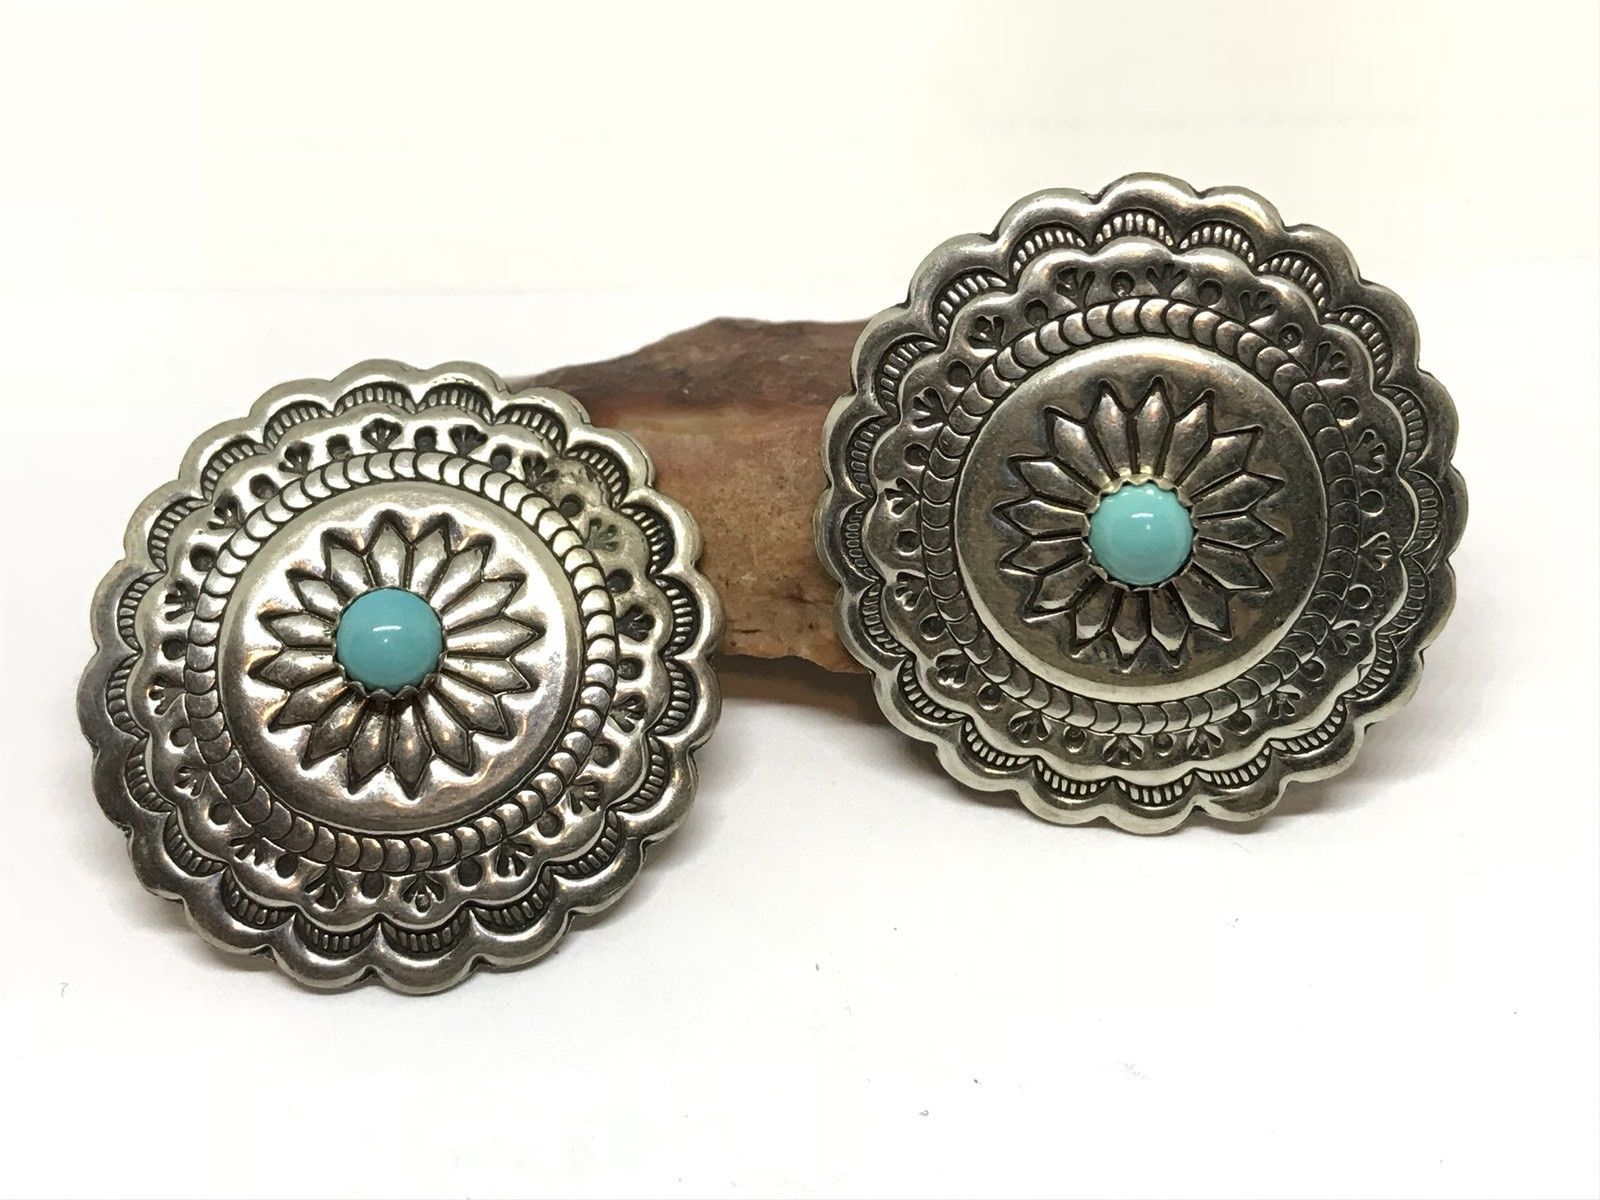 676a2a863 VINTAGE NATIVE AMERICAN Navajo Sterling Turquoise Stamped Concho Earrings  (9.0g) - $8.99   PicClick